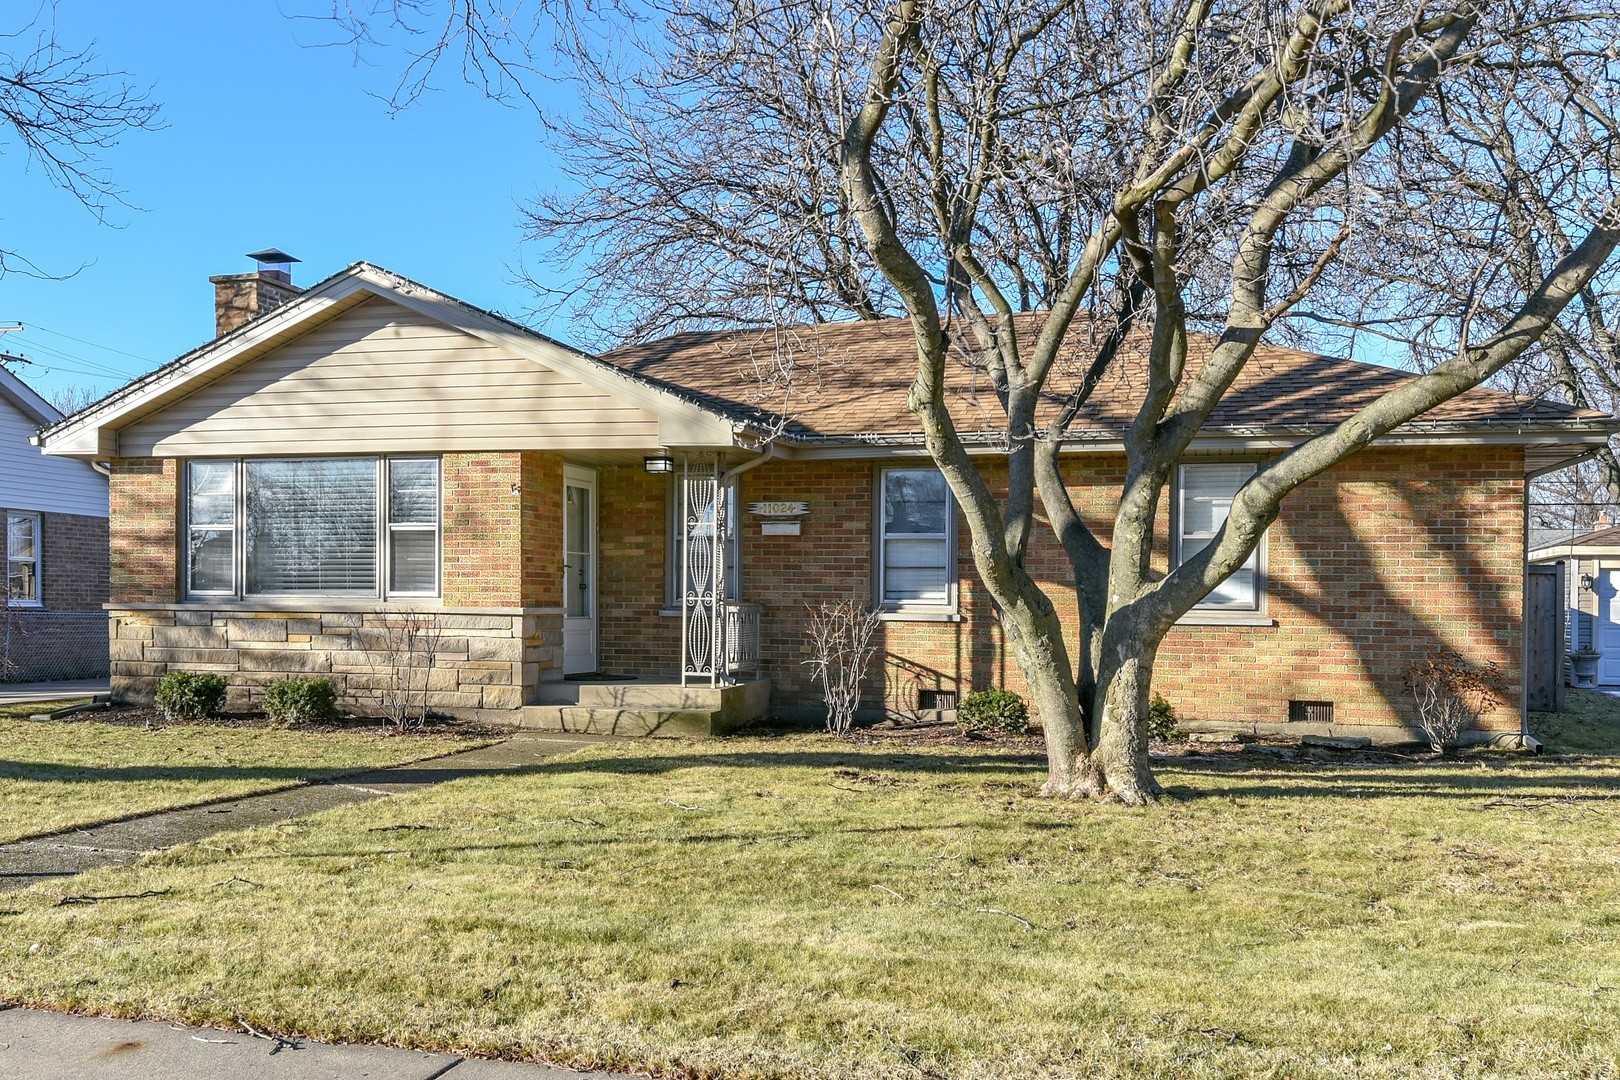 11024 Lyman ,Chicago Ridge, Illinois 60415